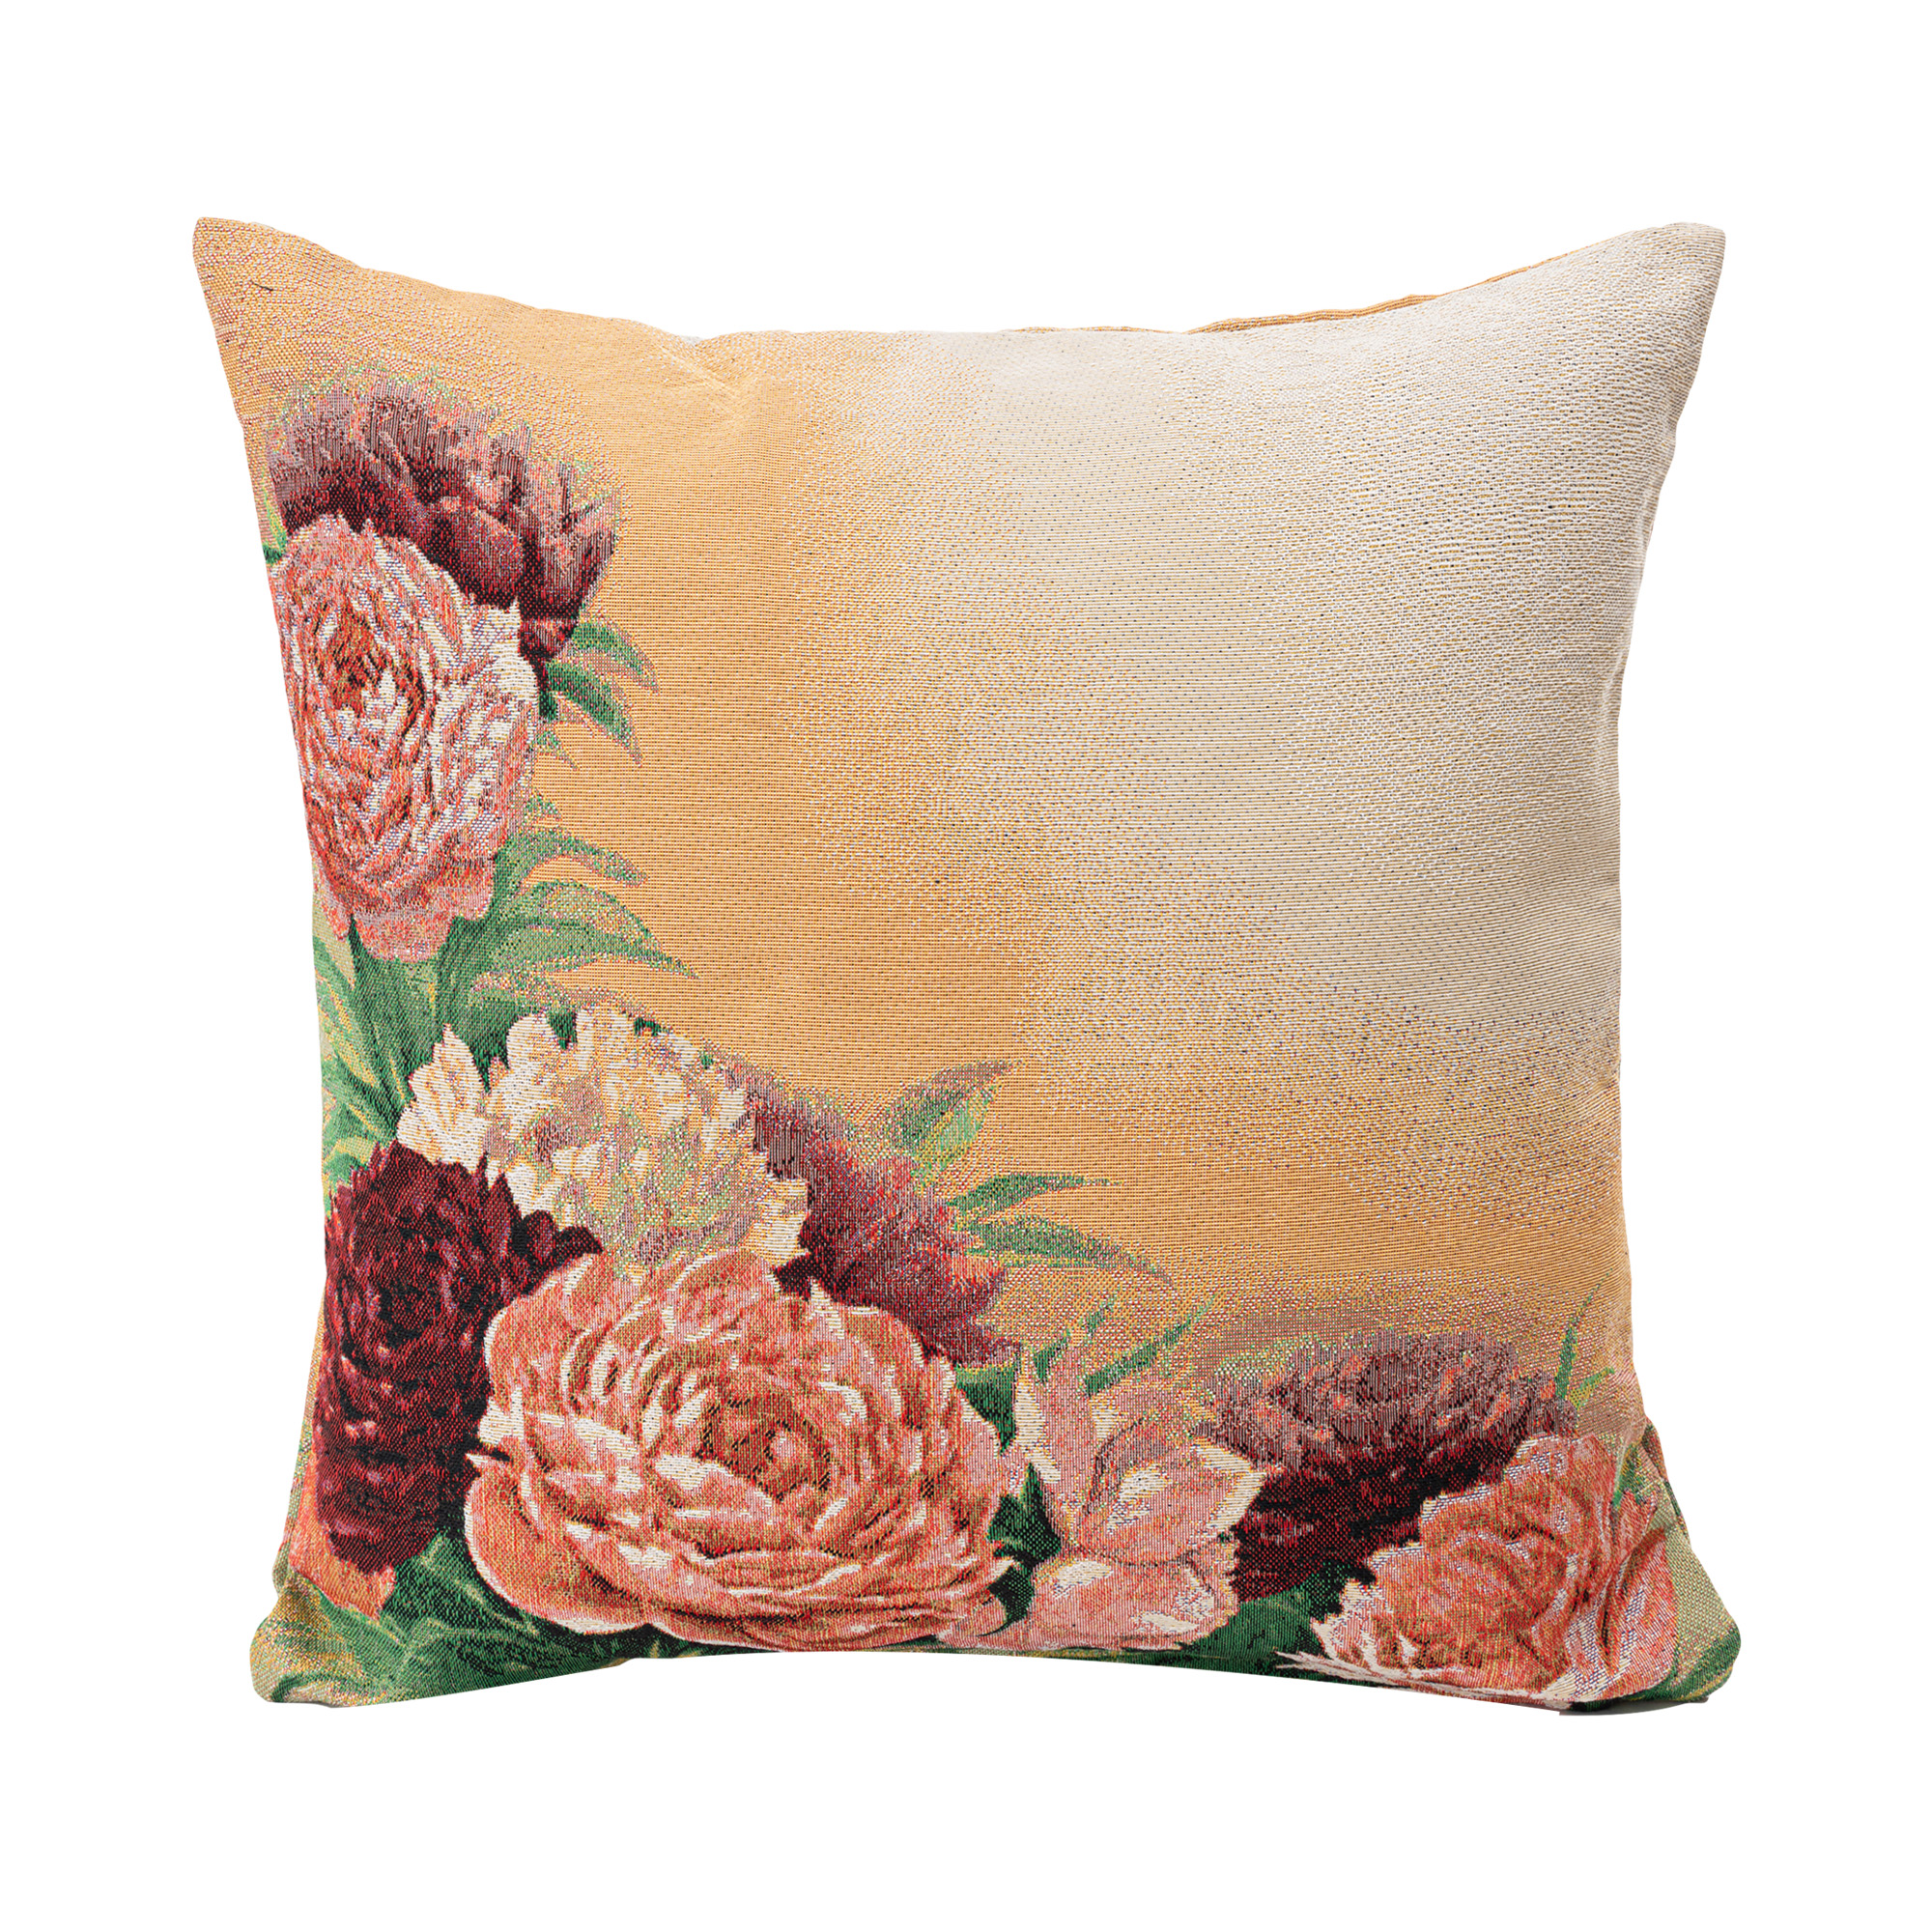 """Peonies Jacquard Woven Cushion Cover/Throw Pillow. Double-Sided Easy Care Polycotton. 45x45cm/18x18""""(Multicolor)"""